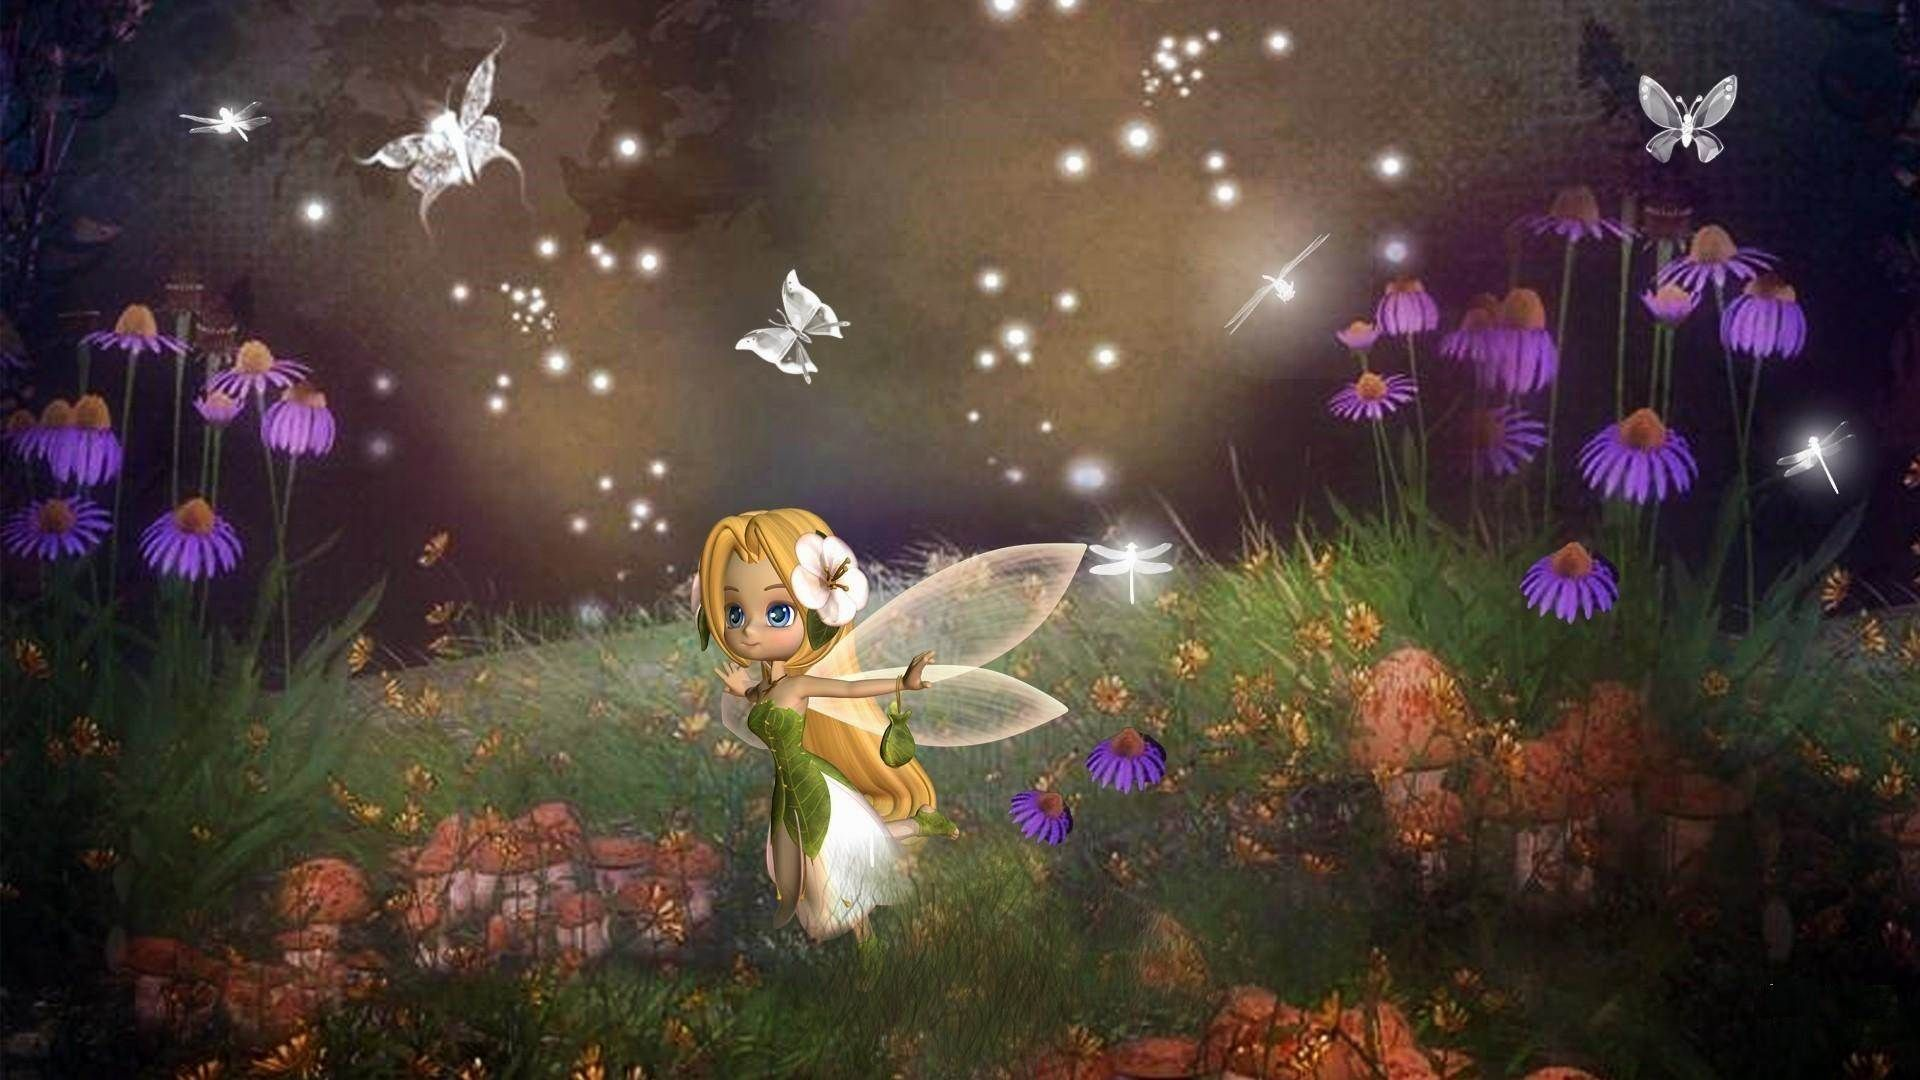 best animated wallpapers dovethemes 1024×768 animated fairy